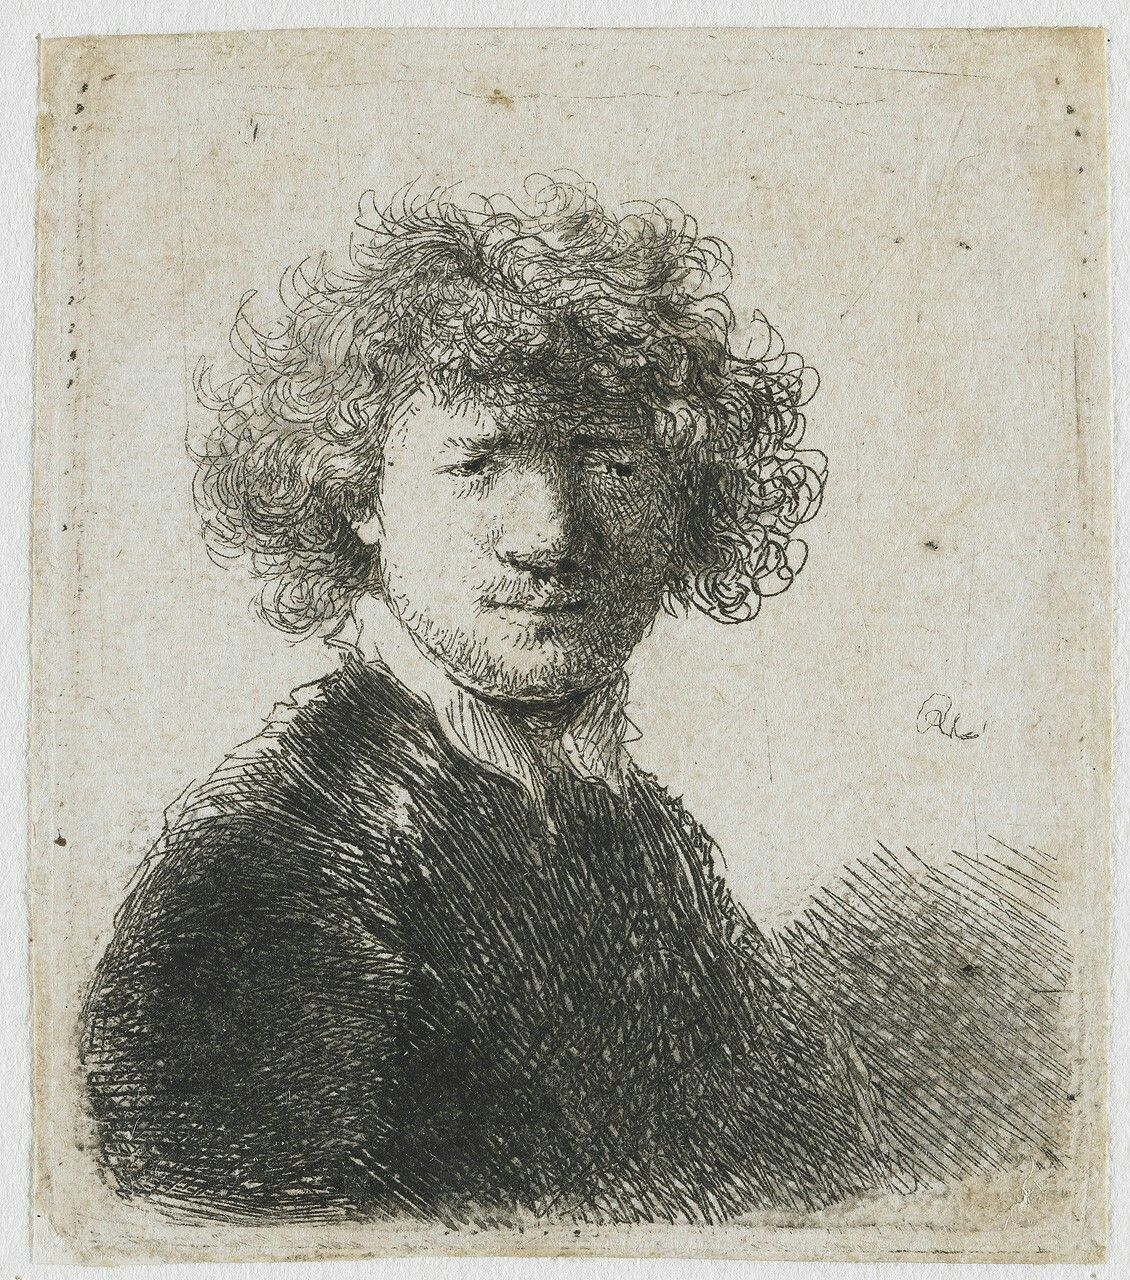 Bust of an old man with a flowing beard, the head bowed forward, the left shoulder unshaded, 1630  Rembrandt